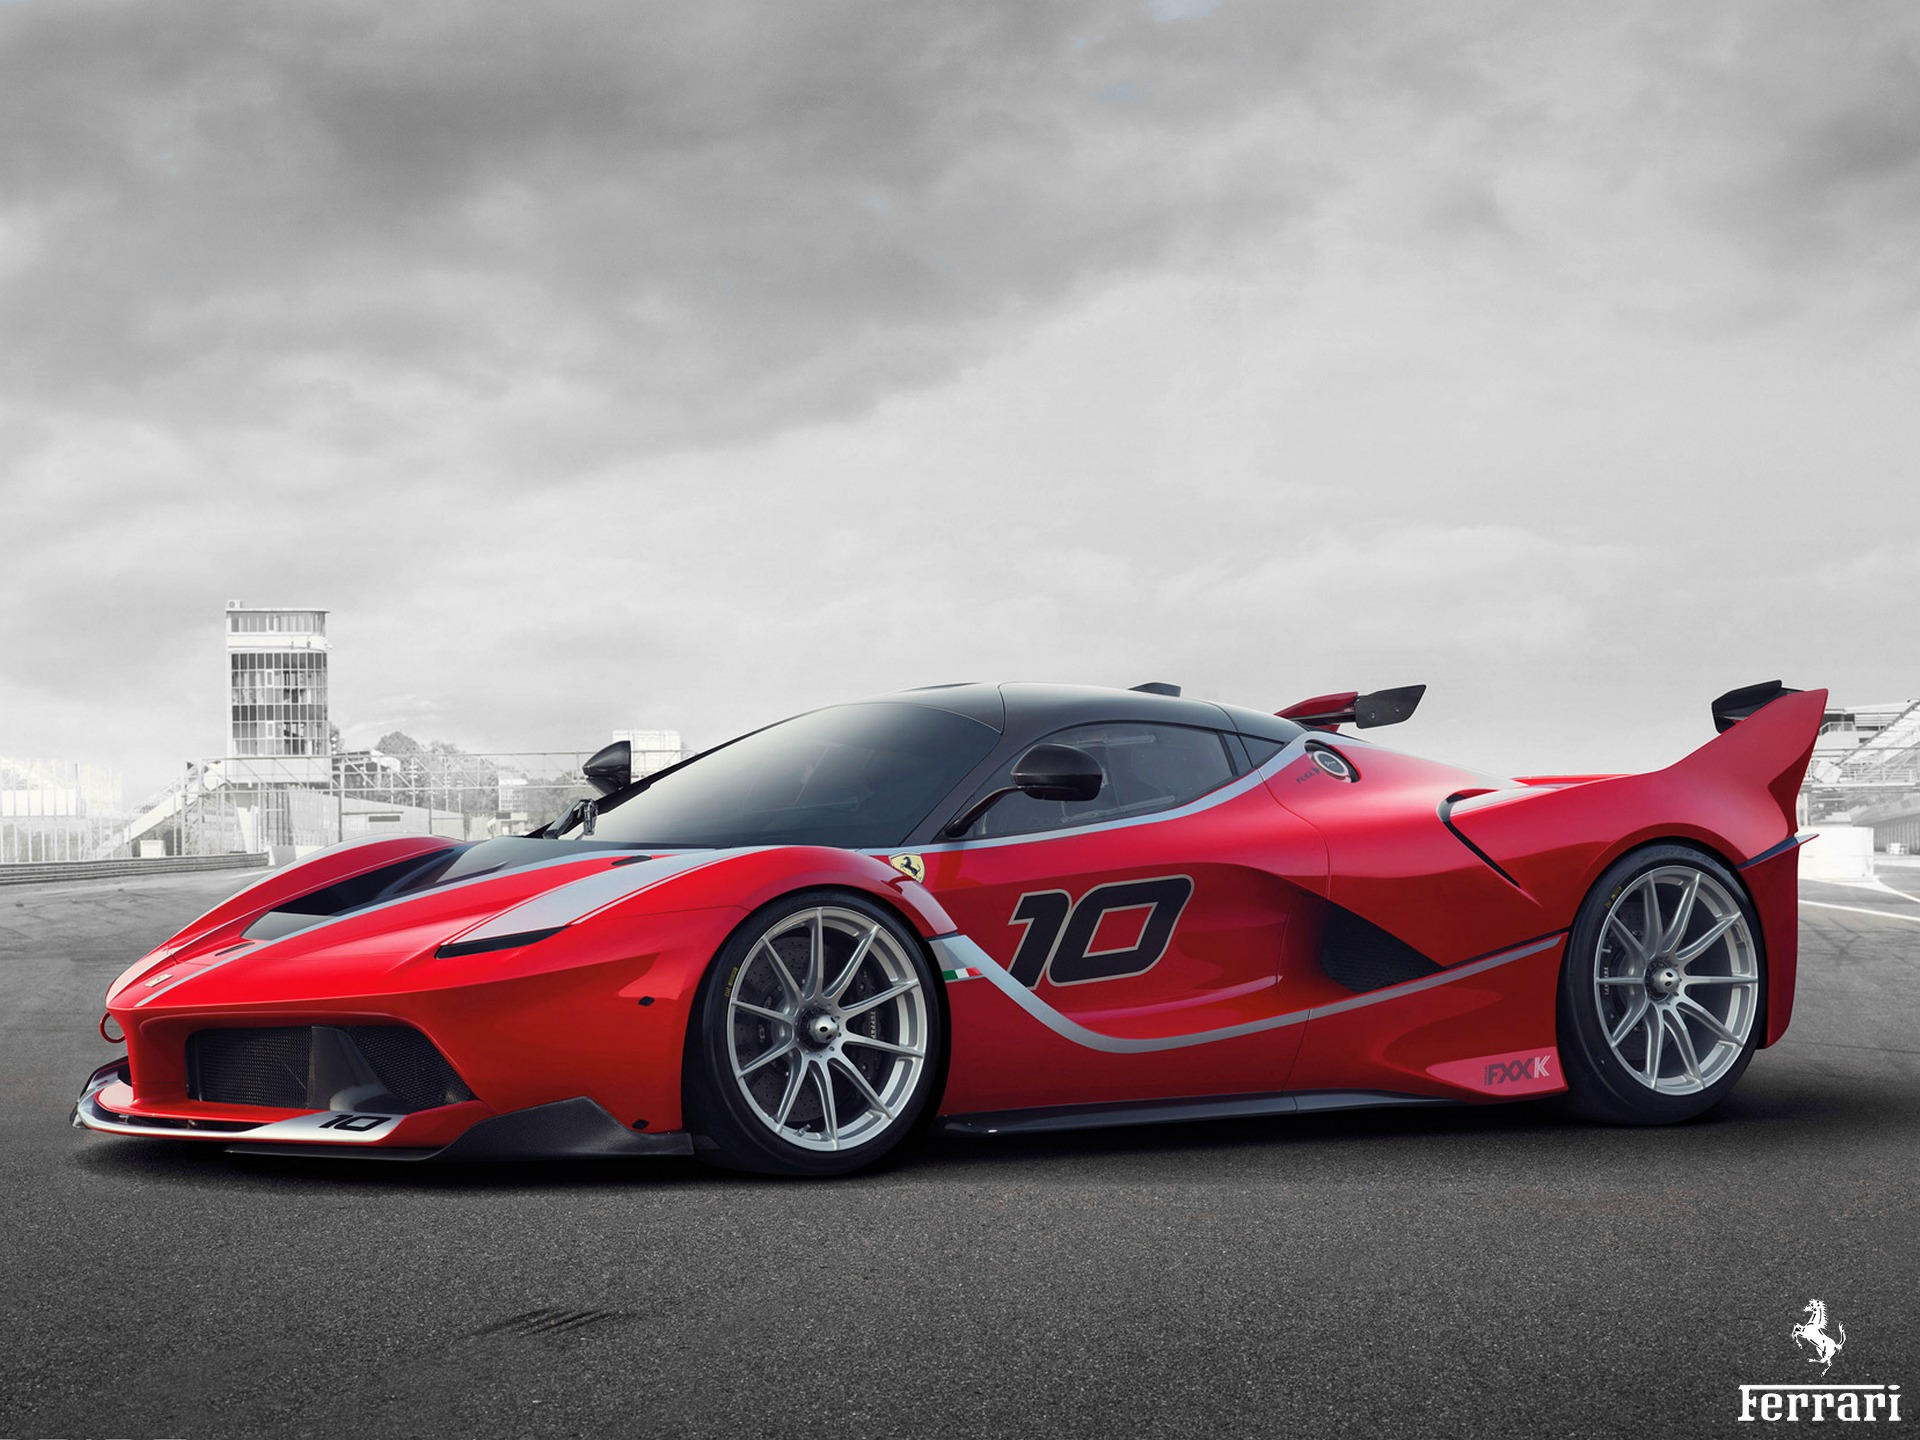 ferrari fxx k 2015 fond ecran inspirats. Black Bedroom Furniture Sets. Home Design Ideas